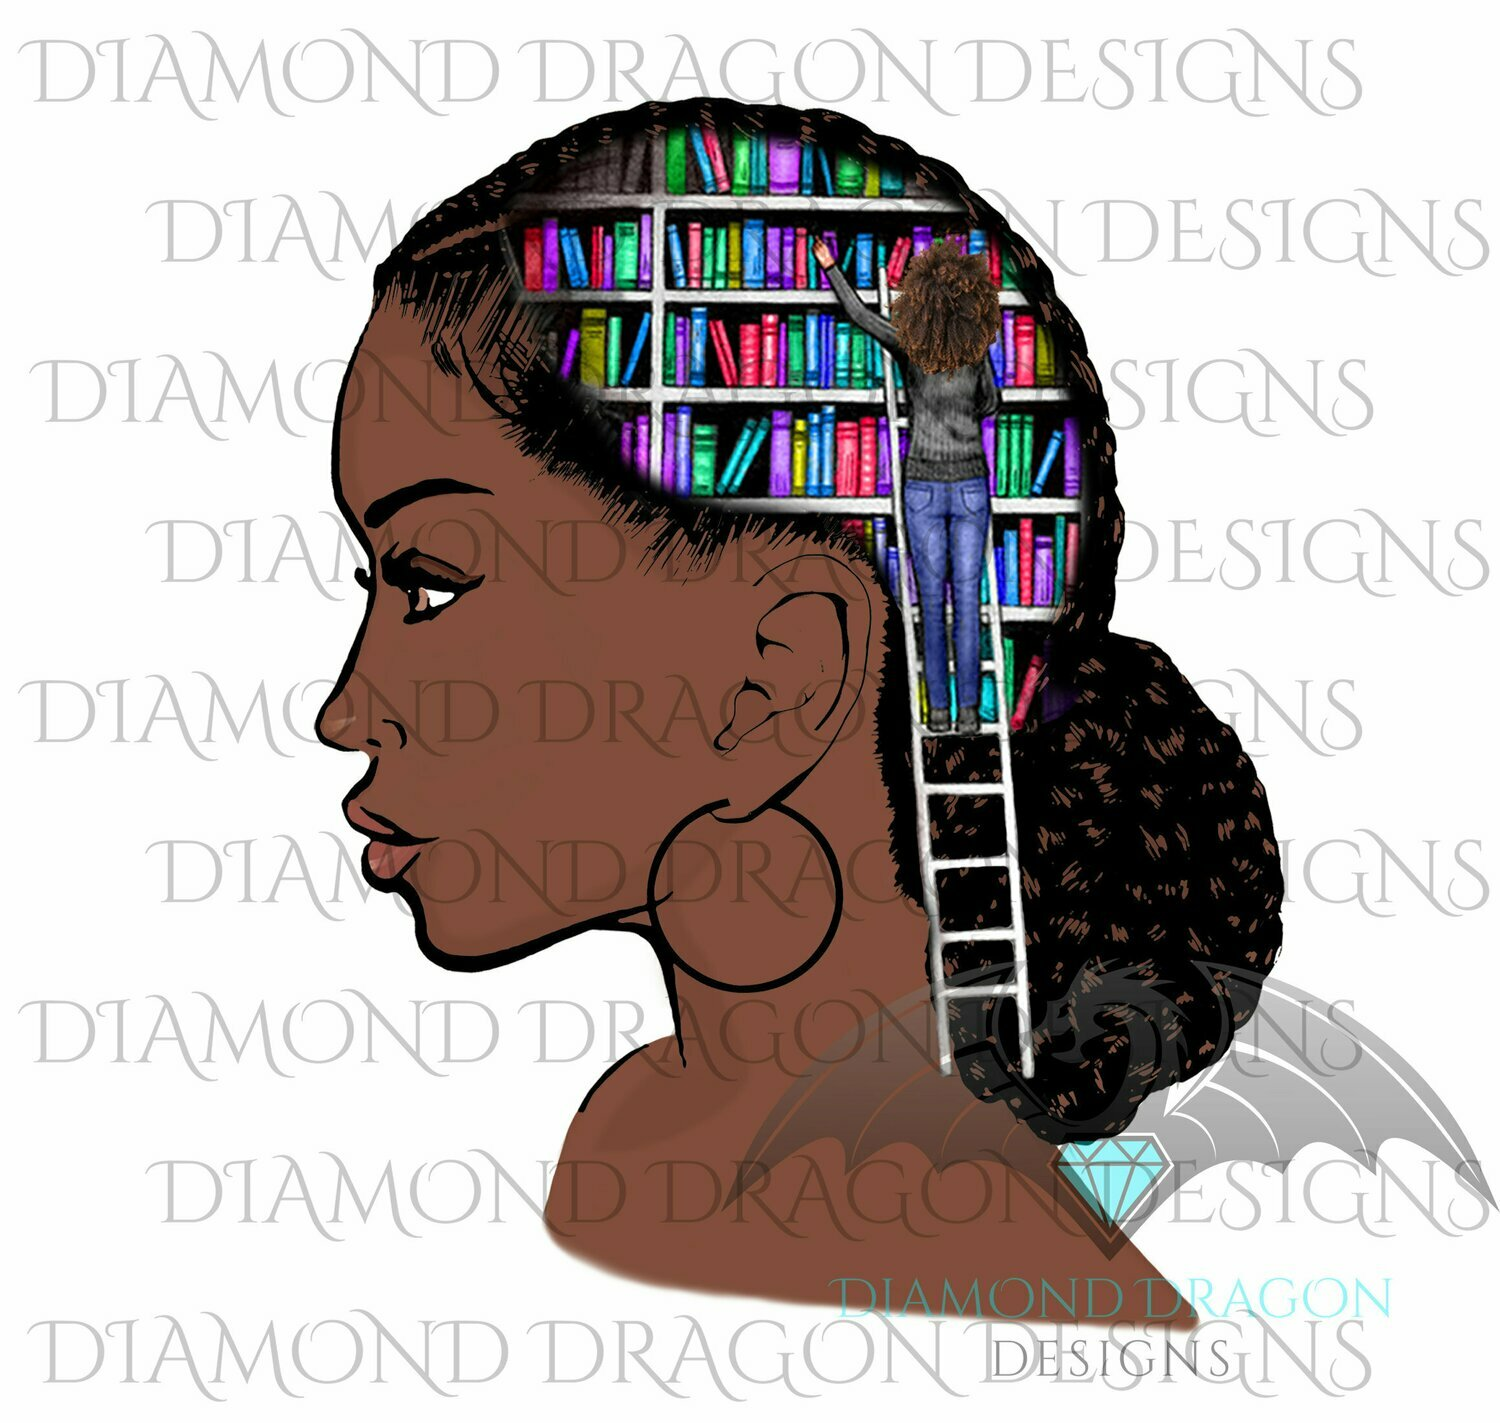 Books - Lady Library, Book Girl, Book Lover, Woman with Books, Bookshelf, Vibrant, Waterslide